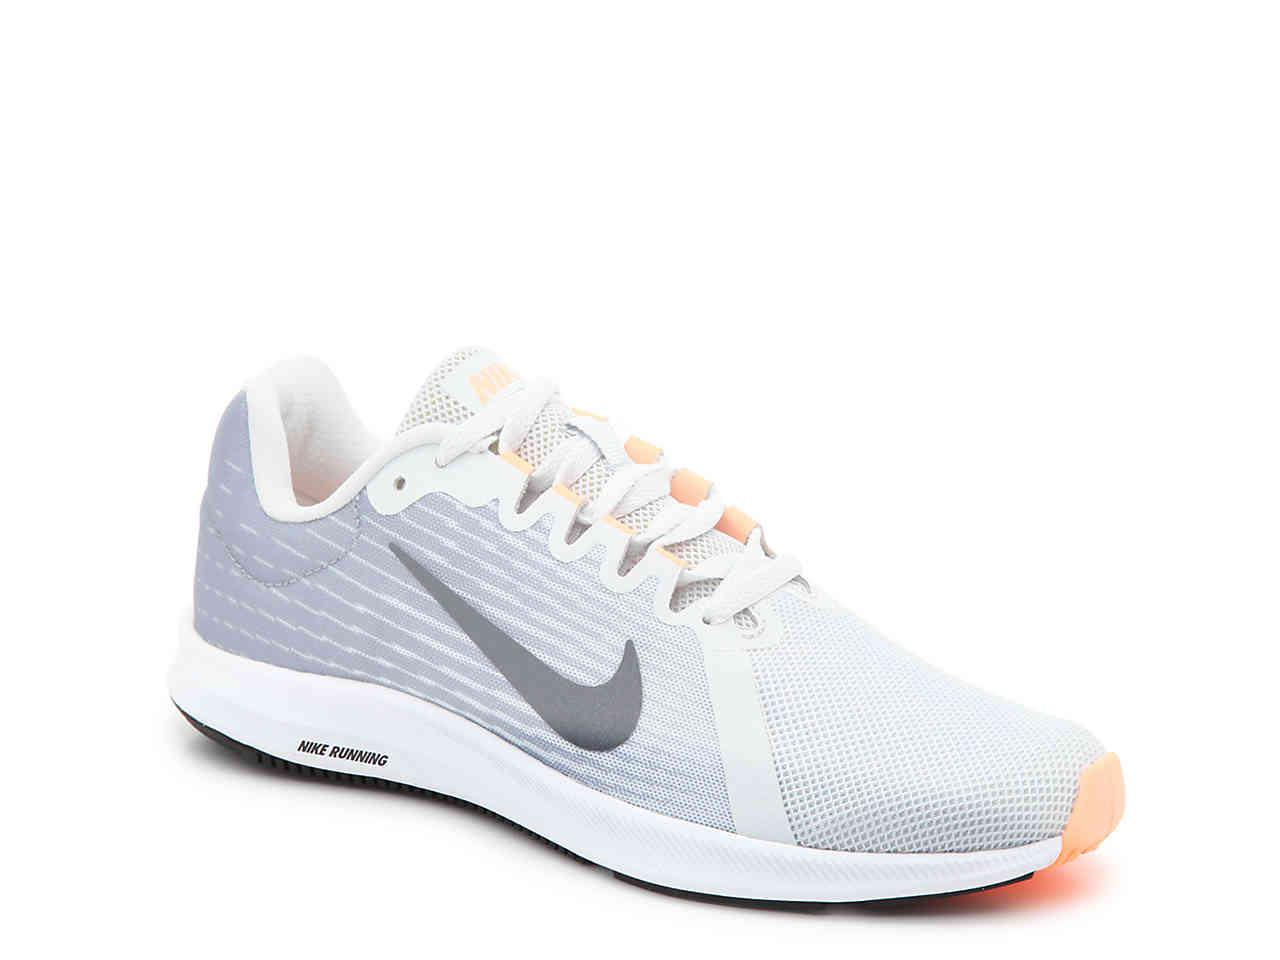 7bb2acf22a2 Lyst - Nike Downshifter 8 Lightweight Running Shoe in White